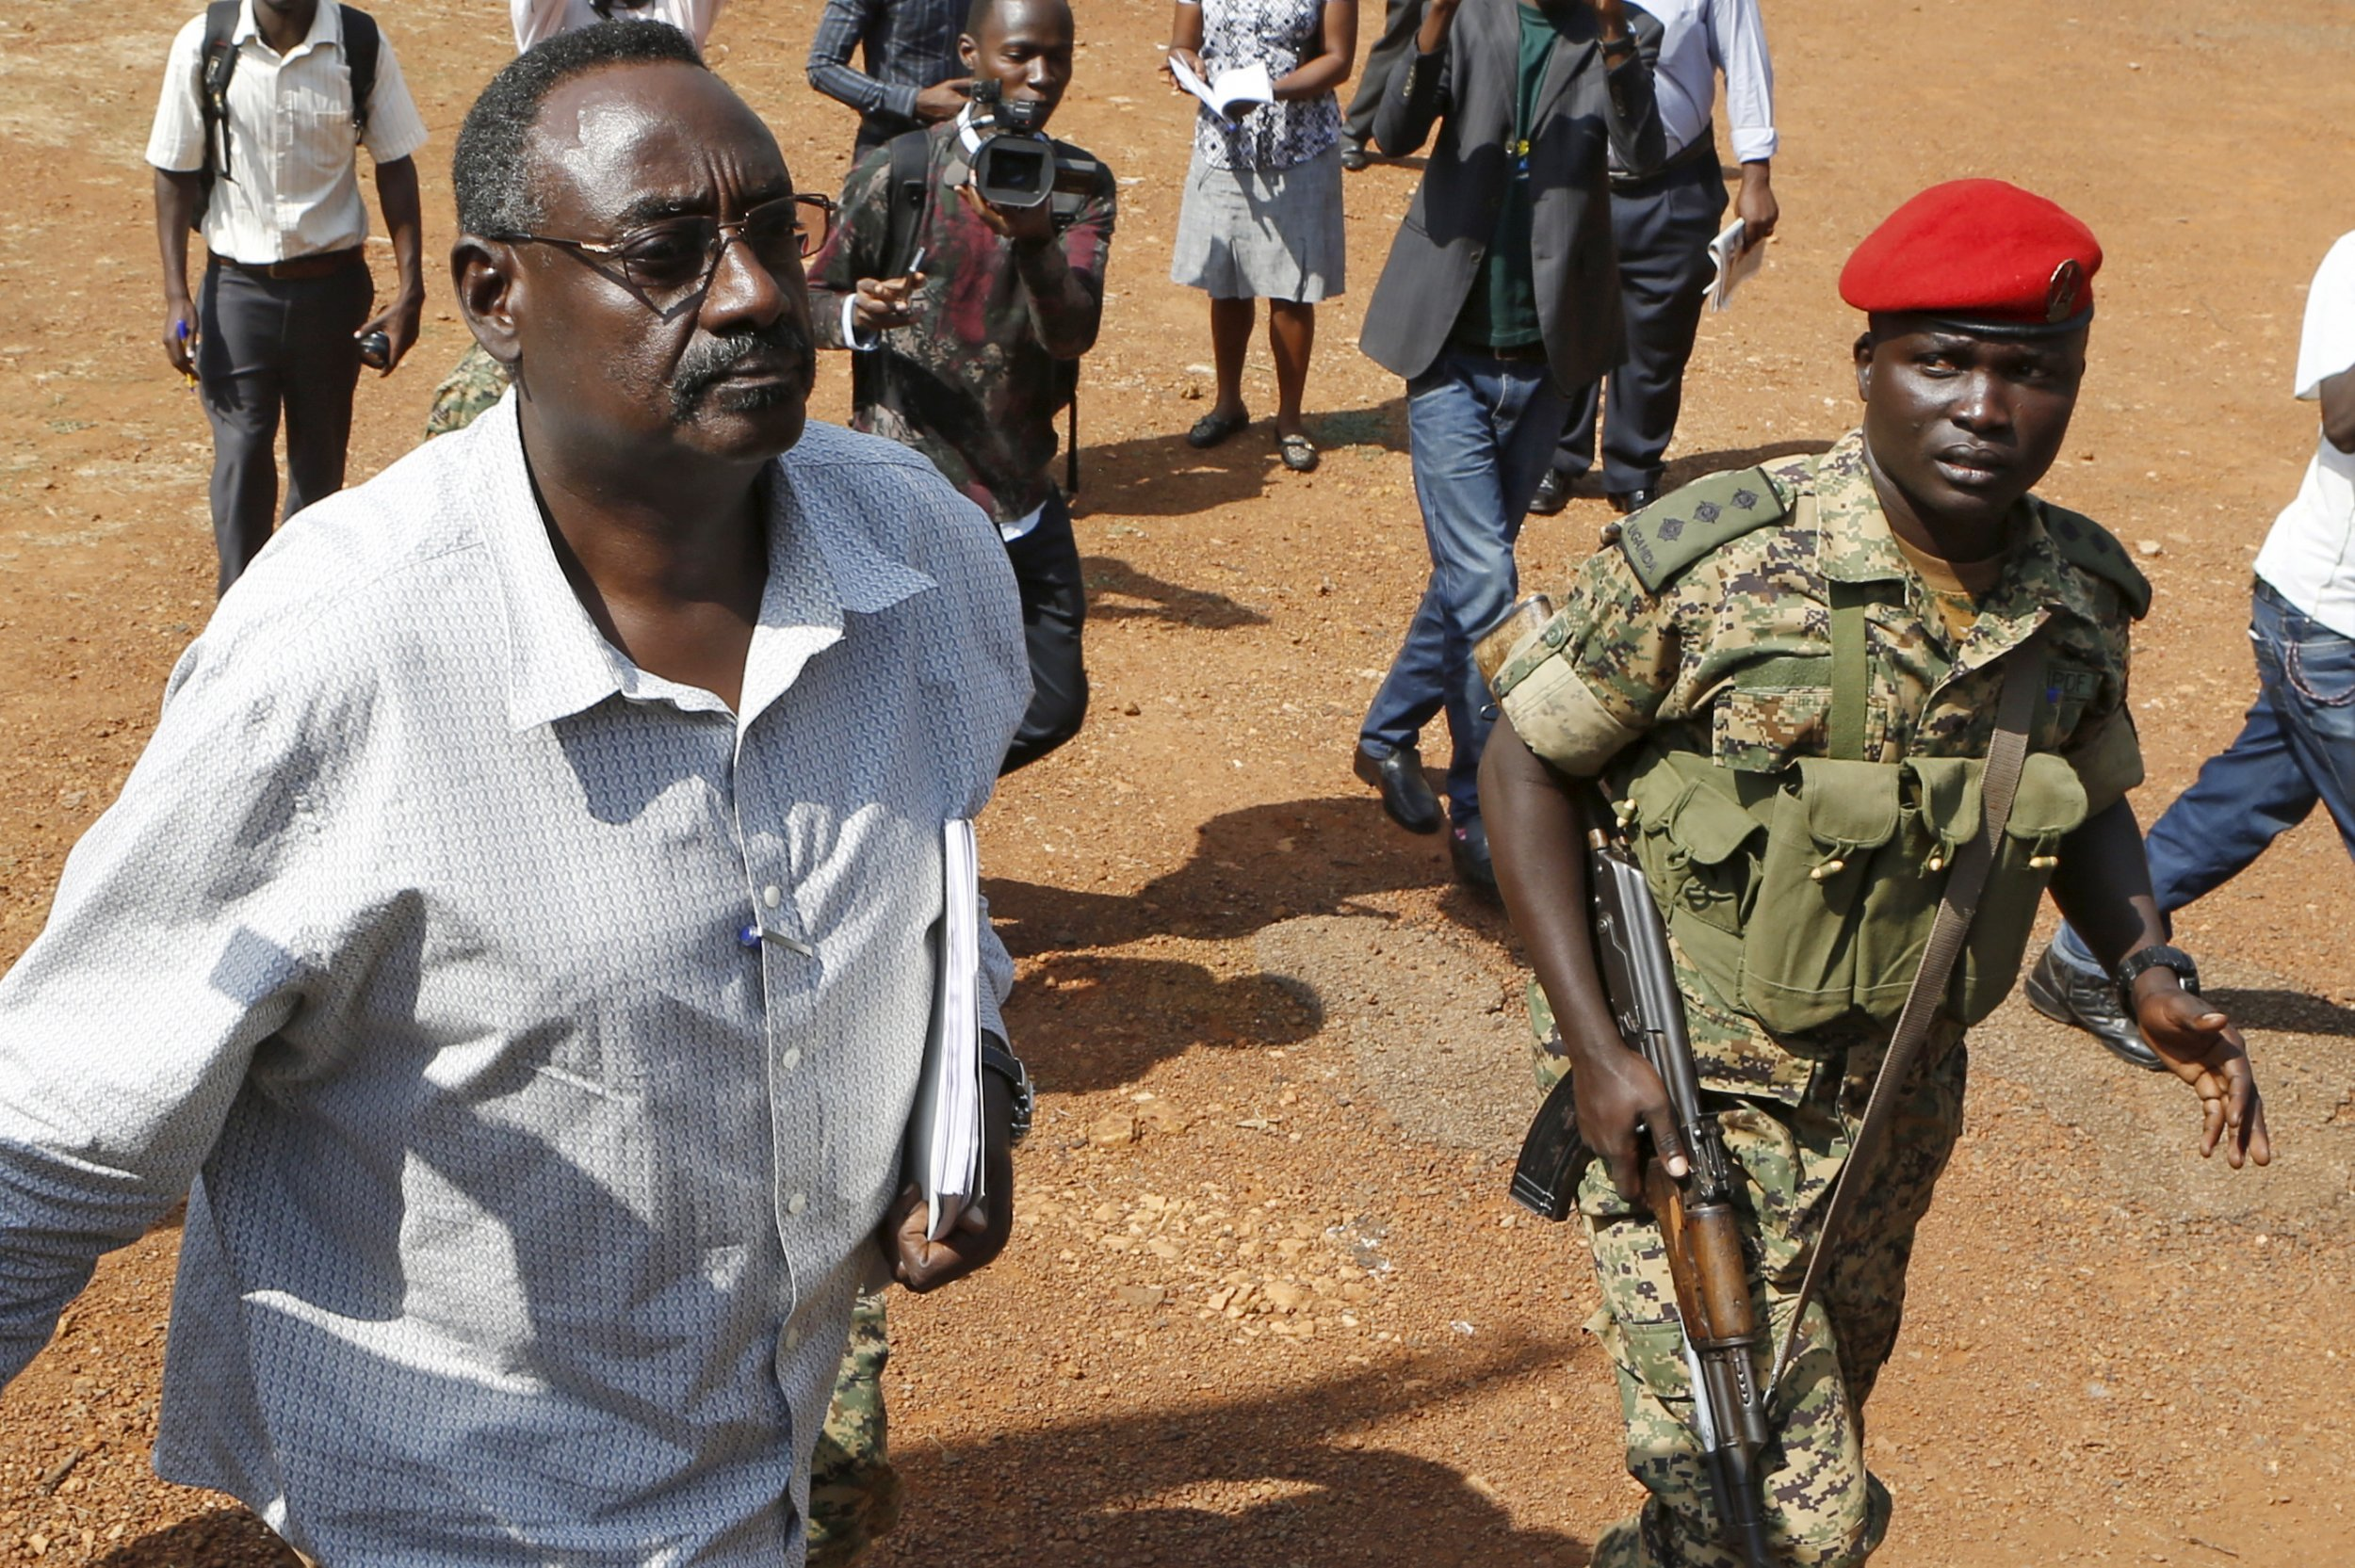 Ugandan army General David Sejusa, a critic of Yoweri Museveni, has been charged with military offences.